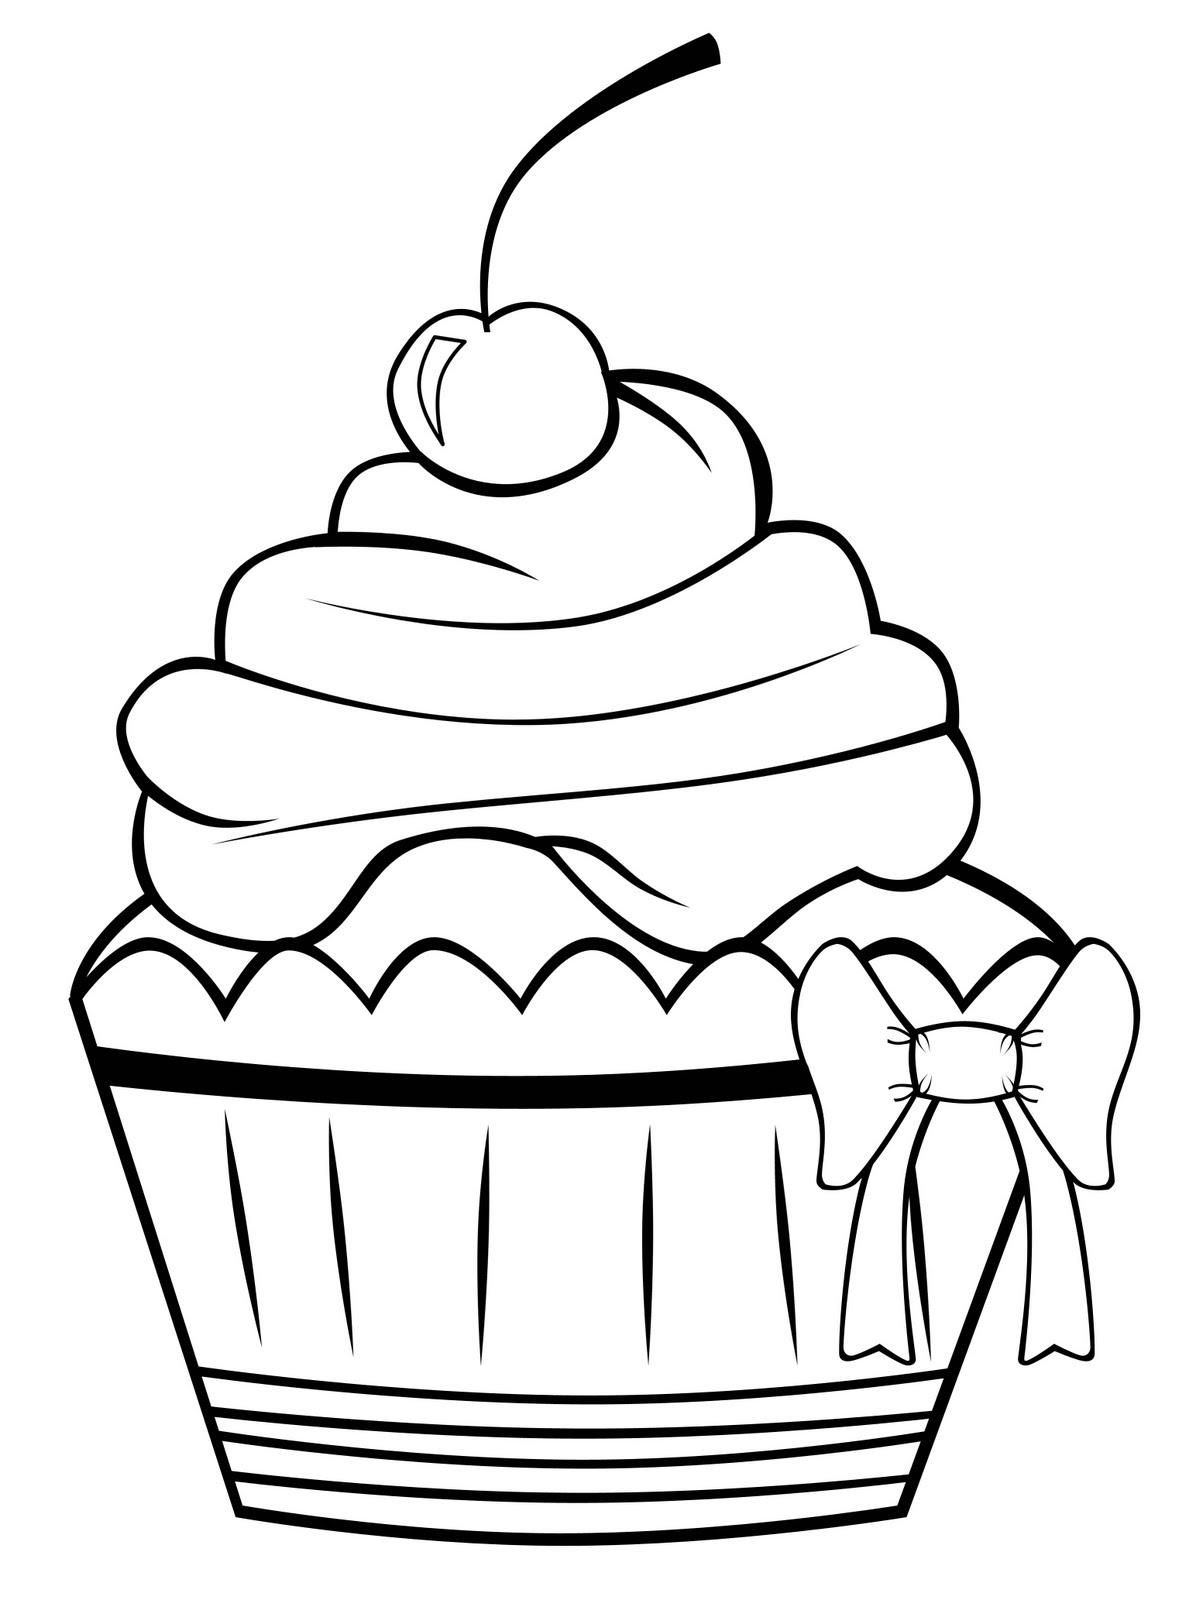 muffin coloring sheet download or print this amazing coloring page the muffin muffin sheet coloring